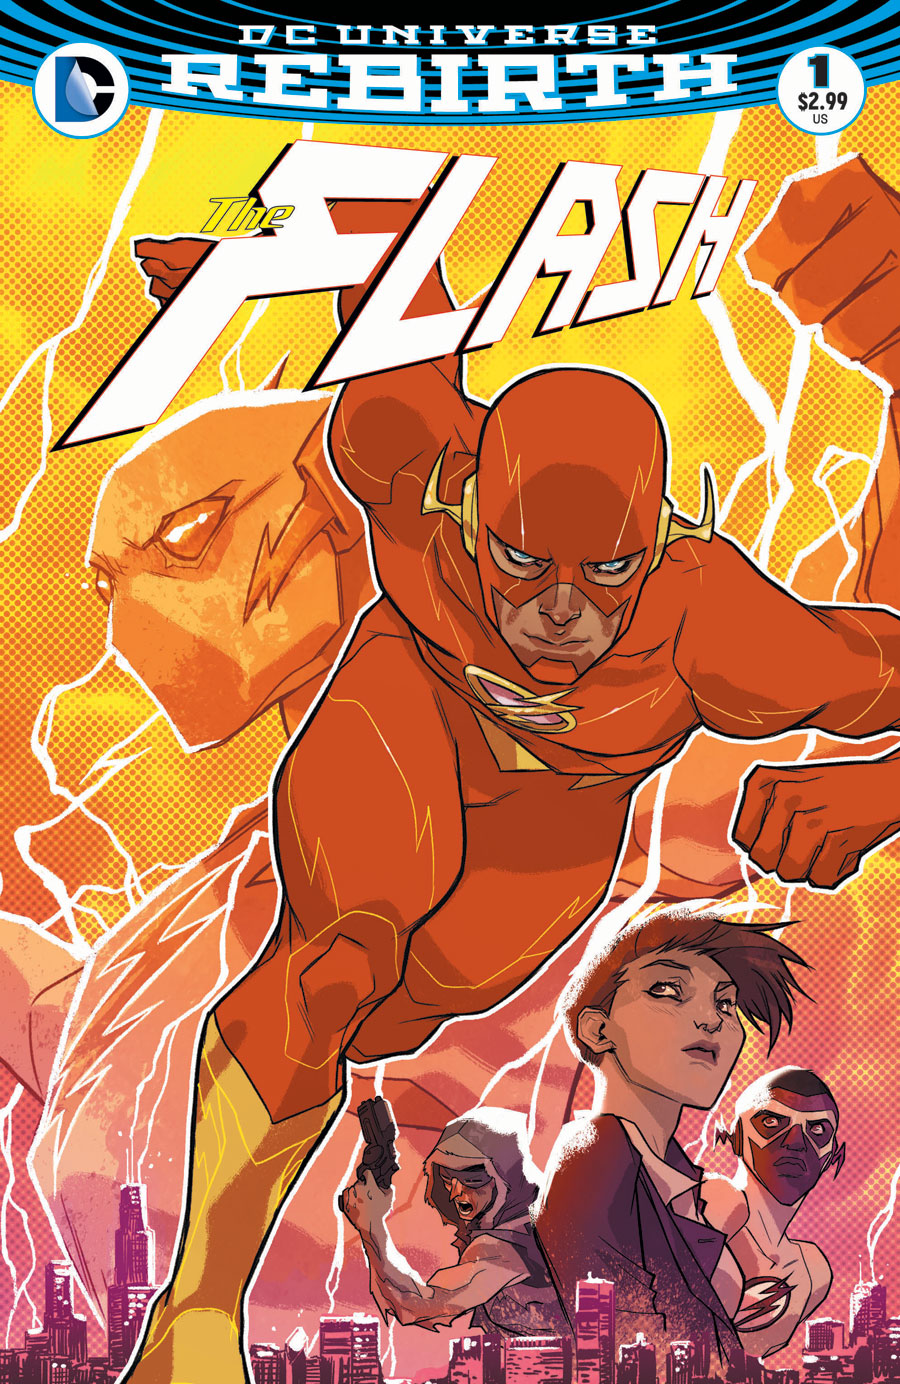 The Flash #1 Review: This is OUR Barry!